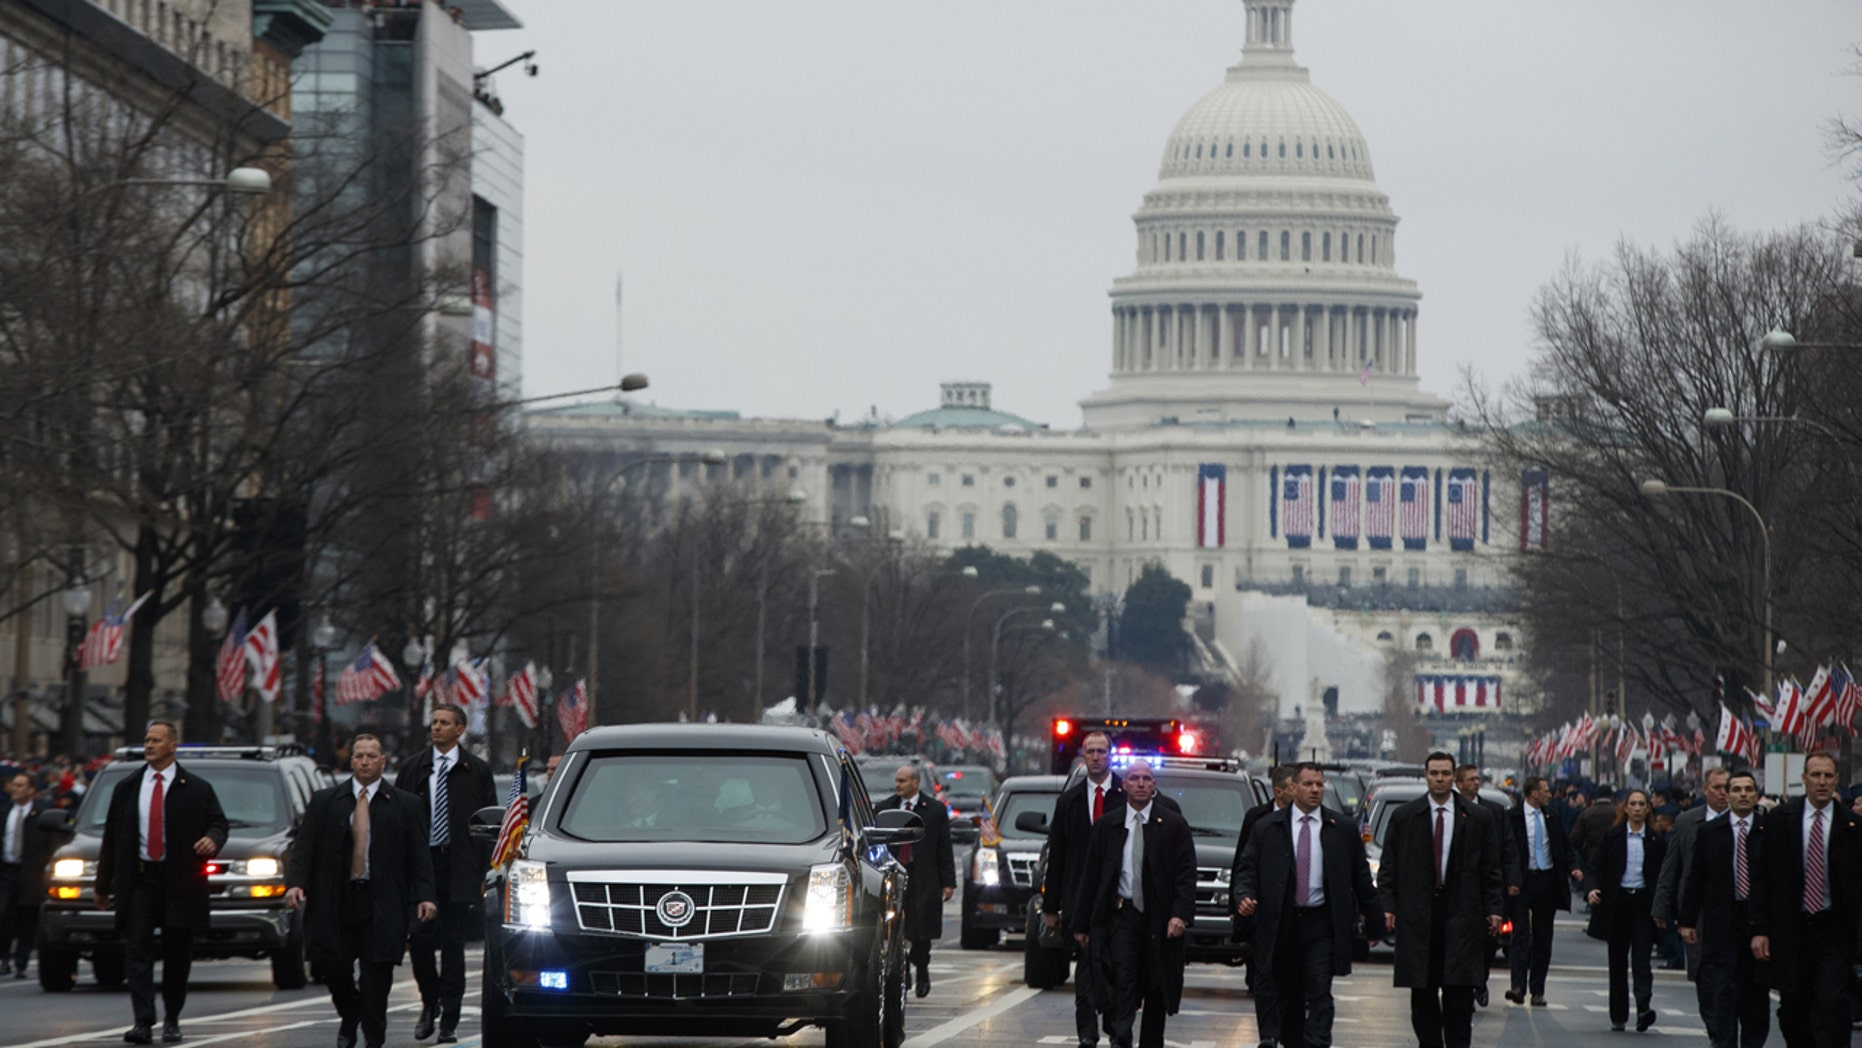 Secret Service agents escort President Donald Trump's vehicle along the inauguration day parade route after he was sworn in as the 45th President of the United States, Friday, Jan. 20, 2017, in Washington.